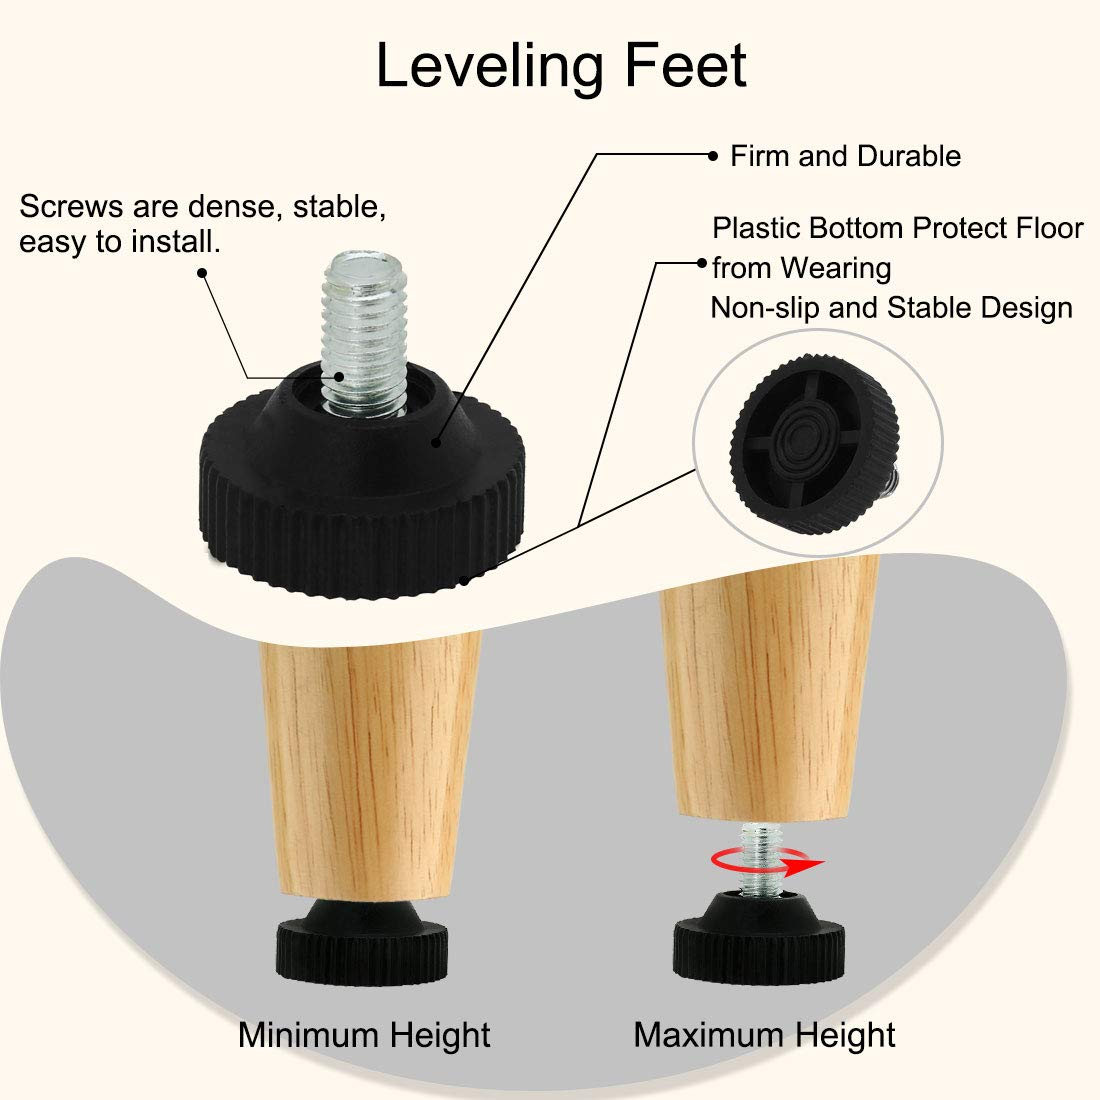 uxcell M8 x 12 x 30mm Furniture Glide Leveling Feet Adjustable Leveler Surface Protection for Chair Leg 12 Pack